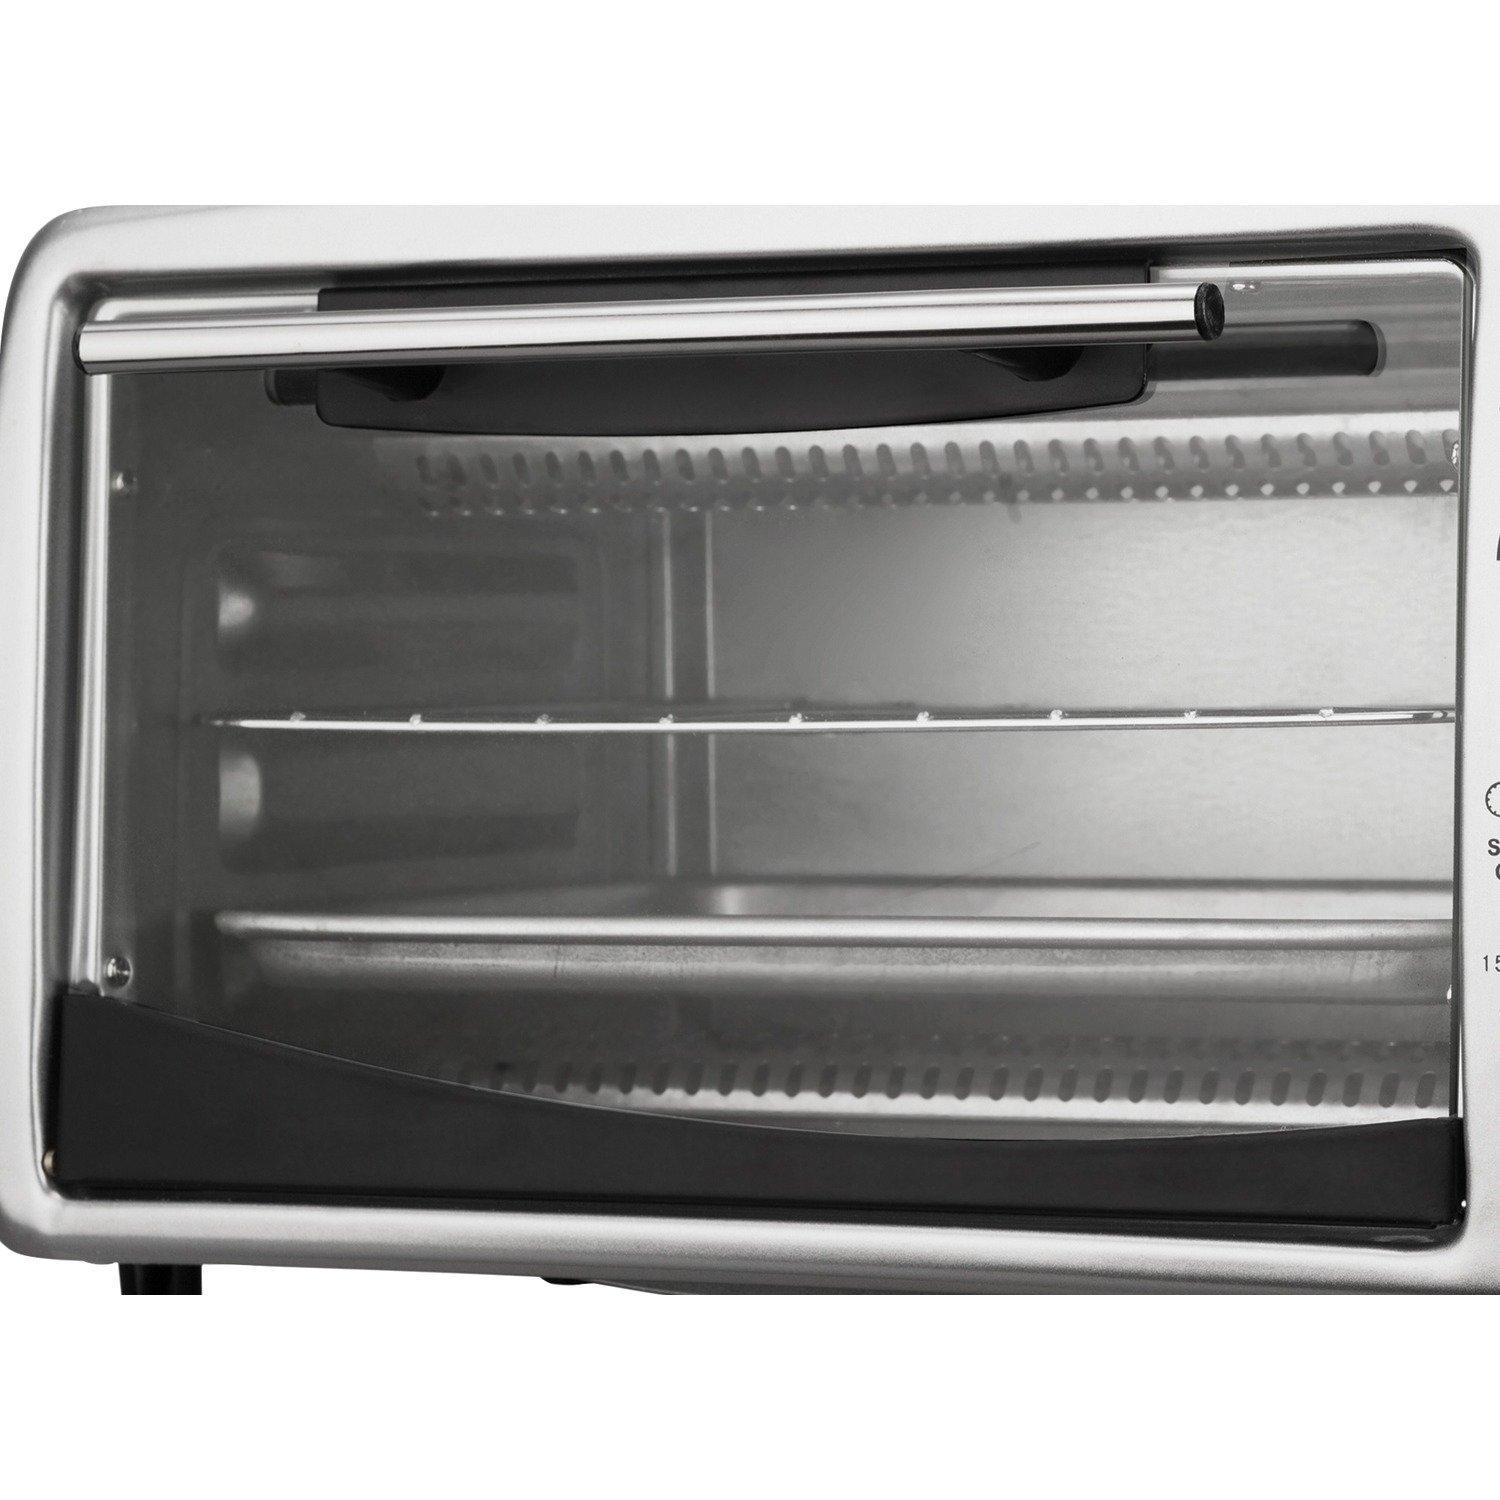 Amazon.com: 9-liter tostador horno, Plateado: Kitchen & Dining